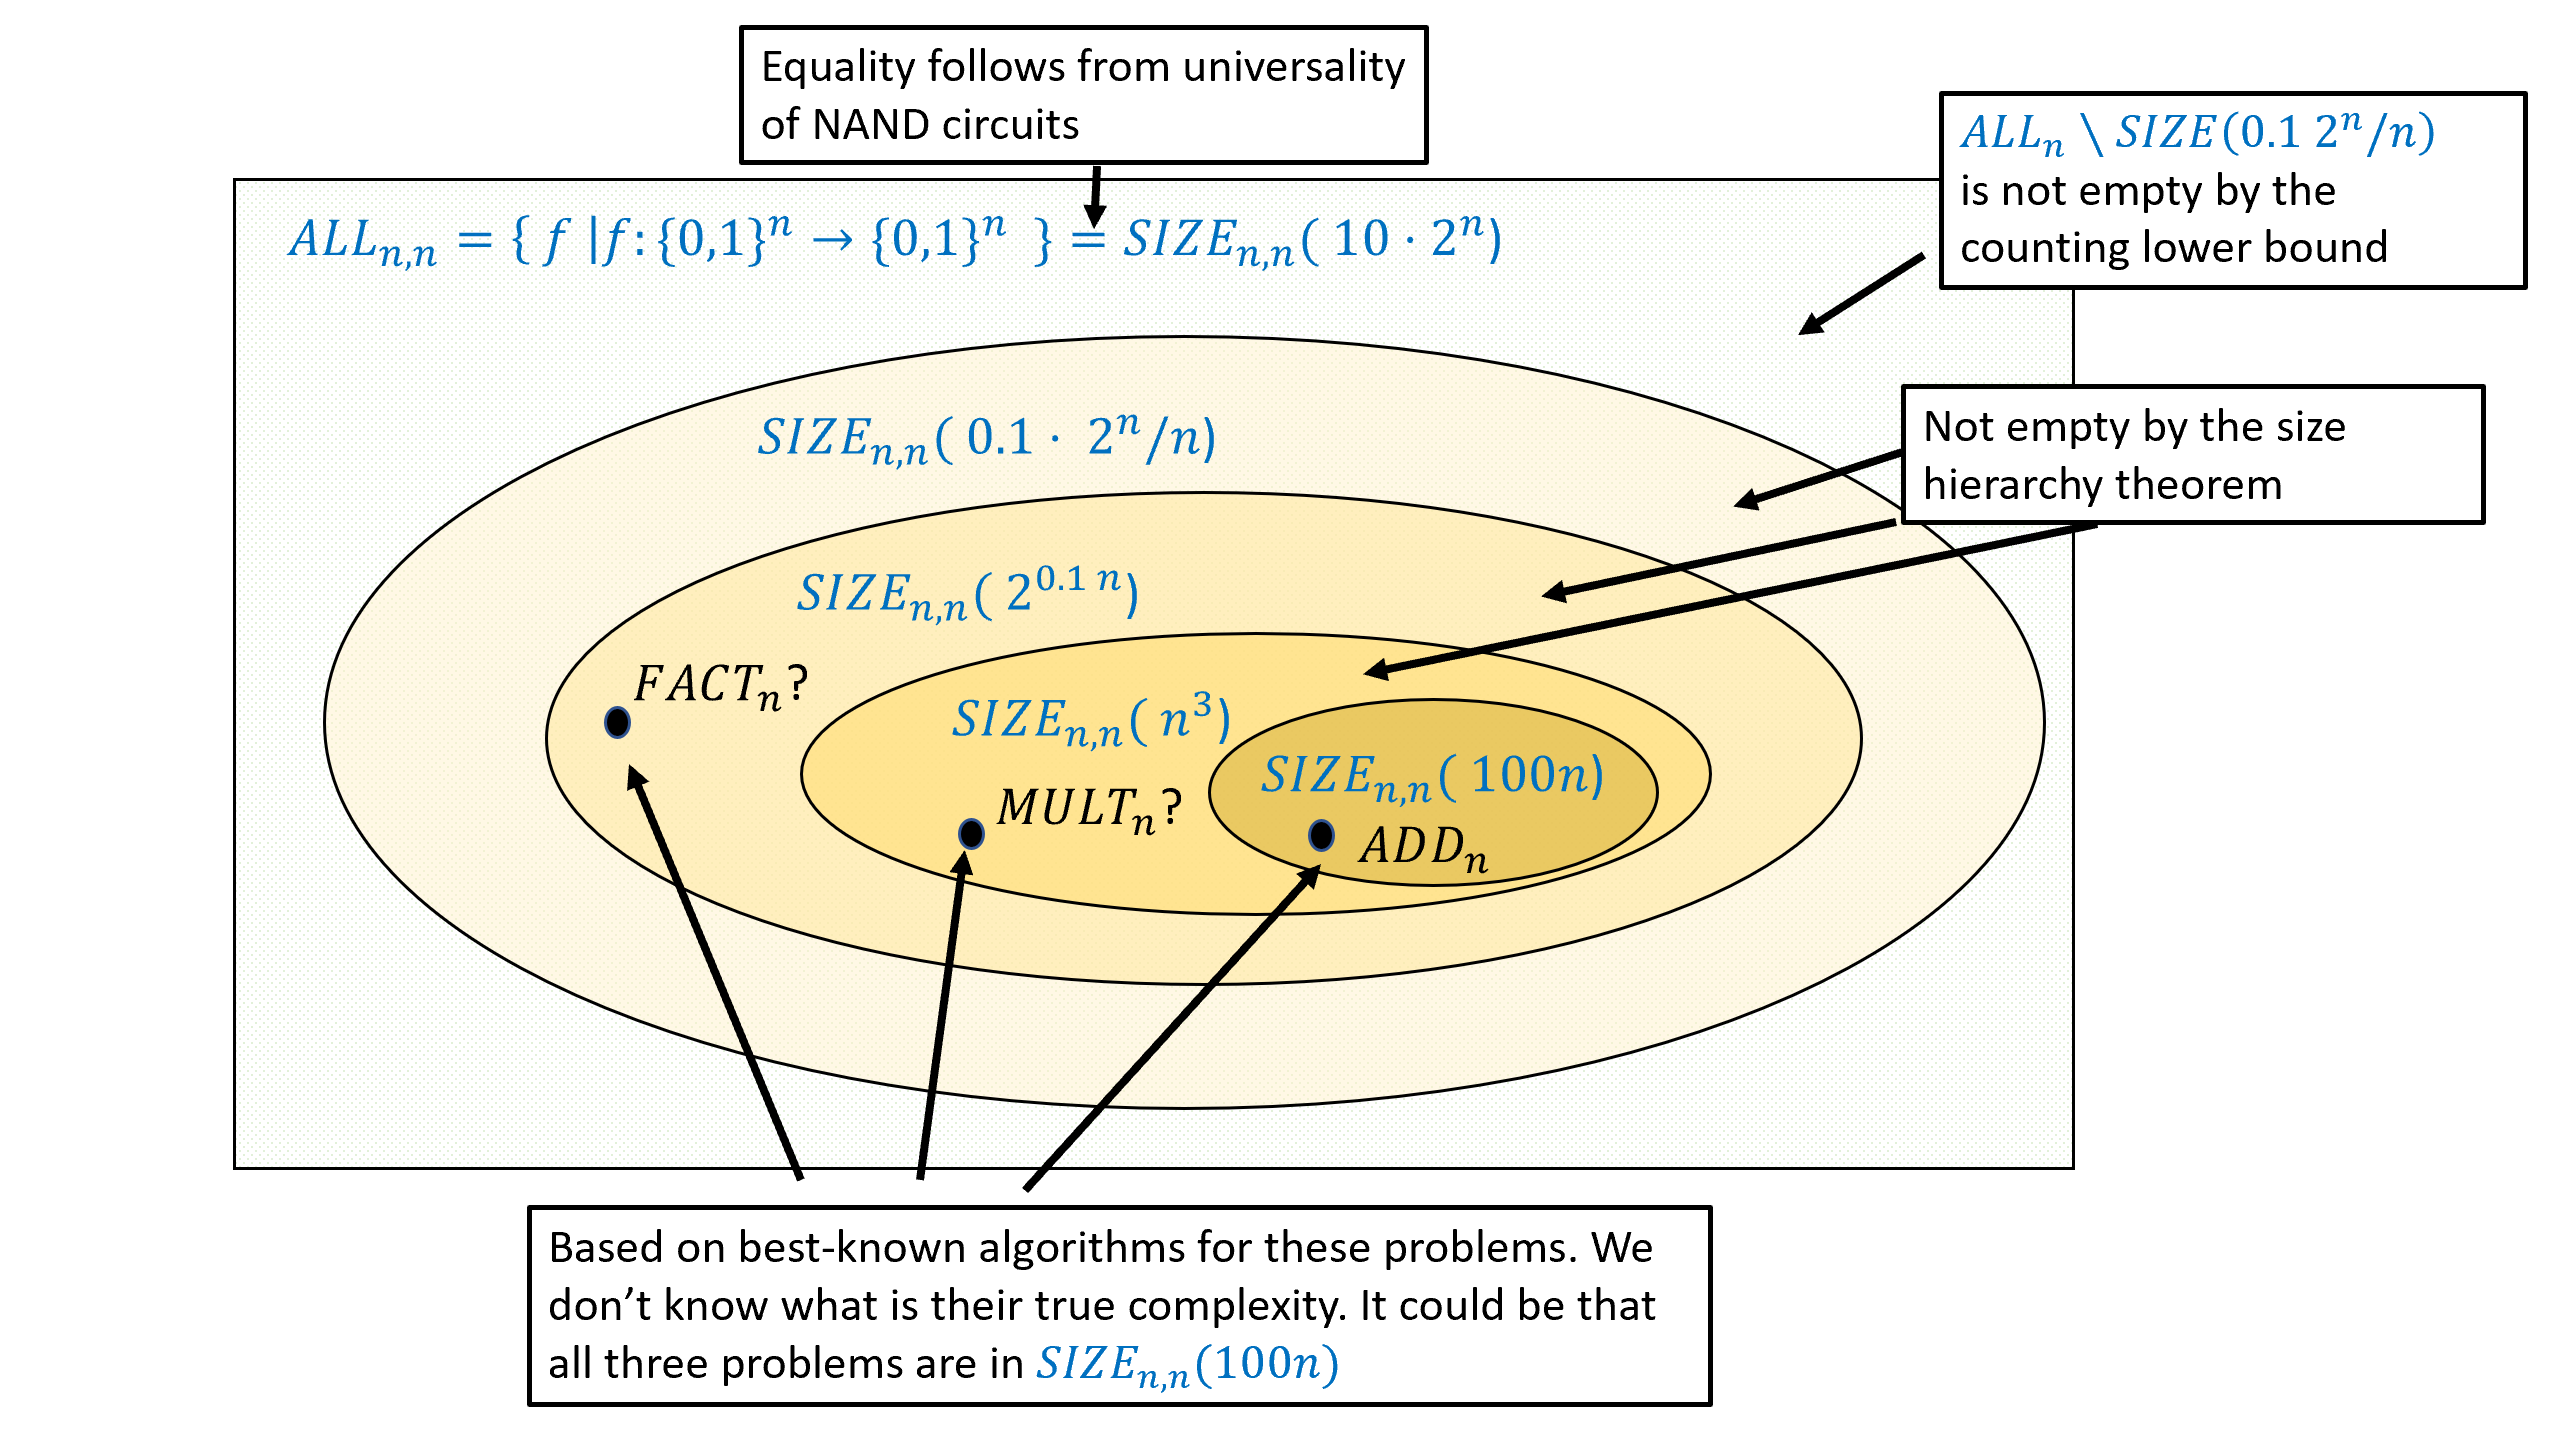 An illustration of some of what we know about the size complexity classes (not to scale!). This figure depicts classes of the form \ensuremath{\mathit{SIZE}}_{n,n}(s) but the state of affairs for other size complexity classes such as \ensuremath{\mathit{SIZE}}_{n,1}(s) is similar. We know by  (with the improvement of ) that all functions mapping n bits to n bits can be computed by a circuit of size c \cdot 2^n for c \leq 10, while on the other hand the counting lower bound (, see also ) shows that some such functions will require 0.1 \cdot 2^n, and the size hierarchy theorem () shows the existence of functions in \ensuremath{\mathit{SIZE}}(S) \setminus \ensuremath{\mathit{SIZE}}(s) whenever s=o(S), see also . We also consider some specific examples: addition of two n/2 bit numbers can be done in O(n) lines, while we don't know of such a program for multiplying two n bit numbers, though we do know it can be done in O(n^2) and in fact even better size. In the above \ensuremath{\mathit{FACTOR}}_n corresponds to the inverse problem of multiplying- finding the prime factorization of a given number. At the moment we do not know of any circuit a polynomial (or even sub-exponential) number of lines that can compute \ensuremath{\mathit{FACTOR}}_n.